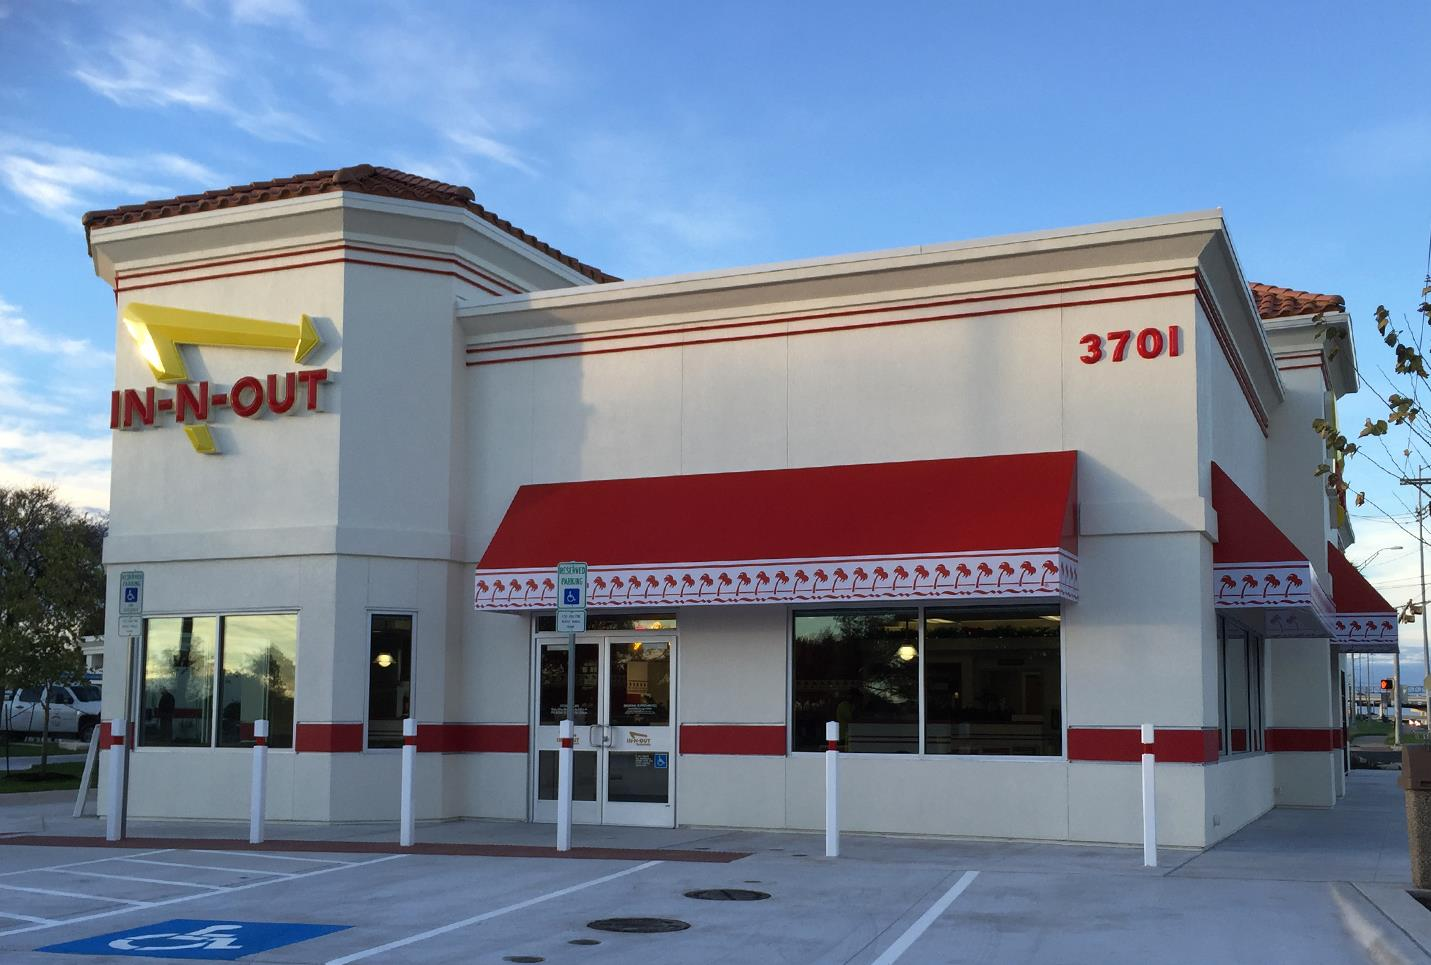 In-N-Out Burger on South Lamar